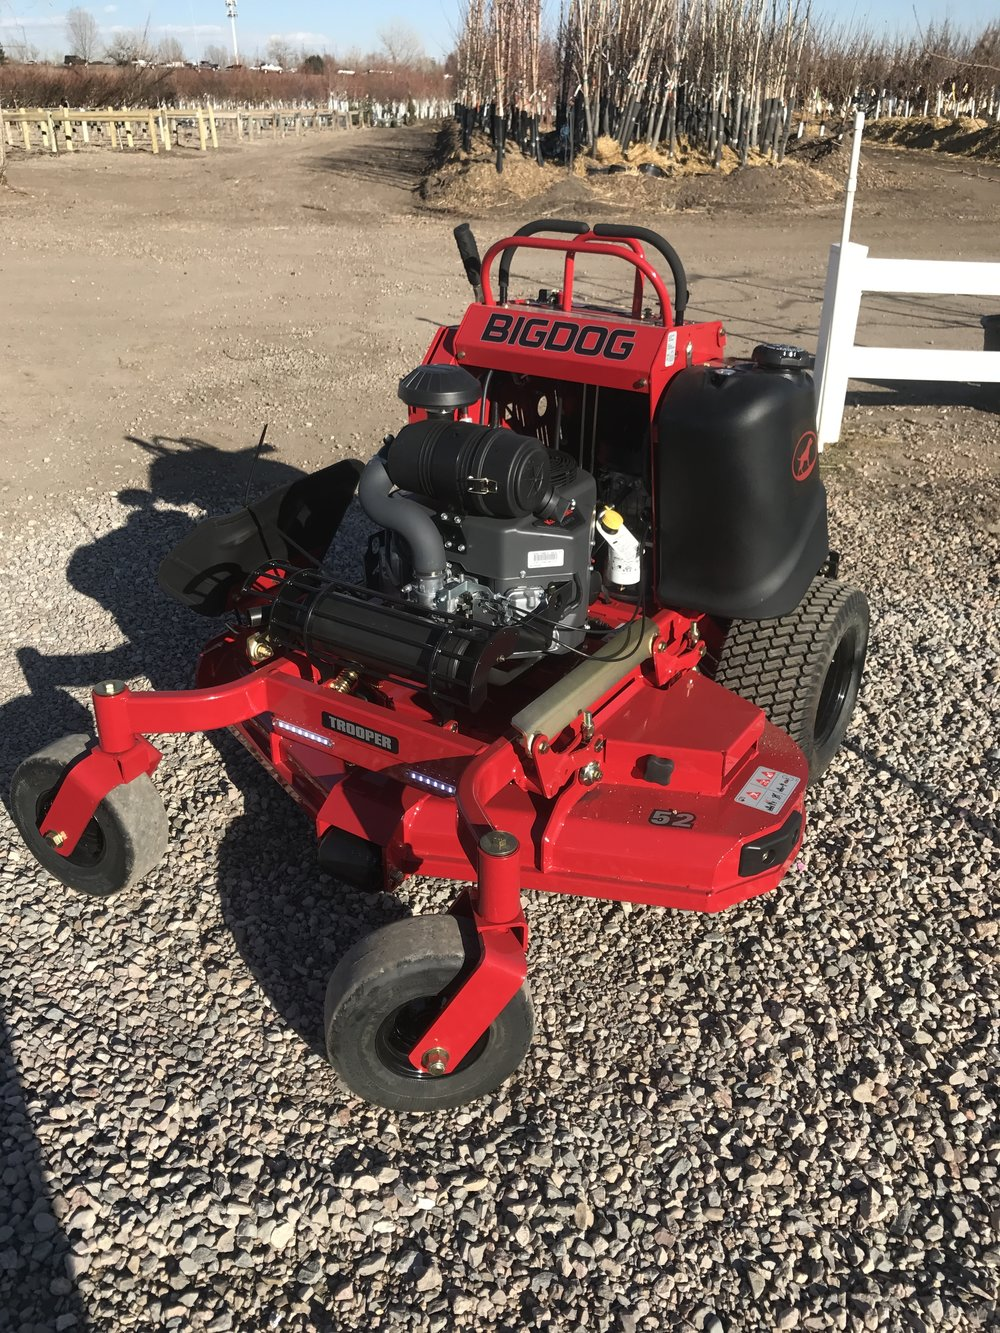 The Trooper is available in 36, 48, 52, 60 cutting decks & offers a feeling of control & balance. BigDog mowers are manufactured alongside Hustler mowers by Excel Industries in Hesston, KS.